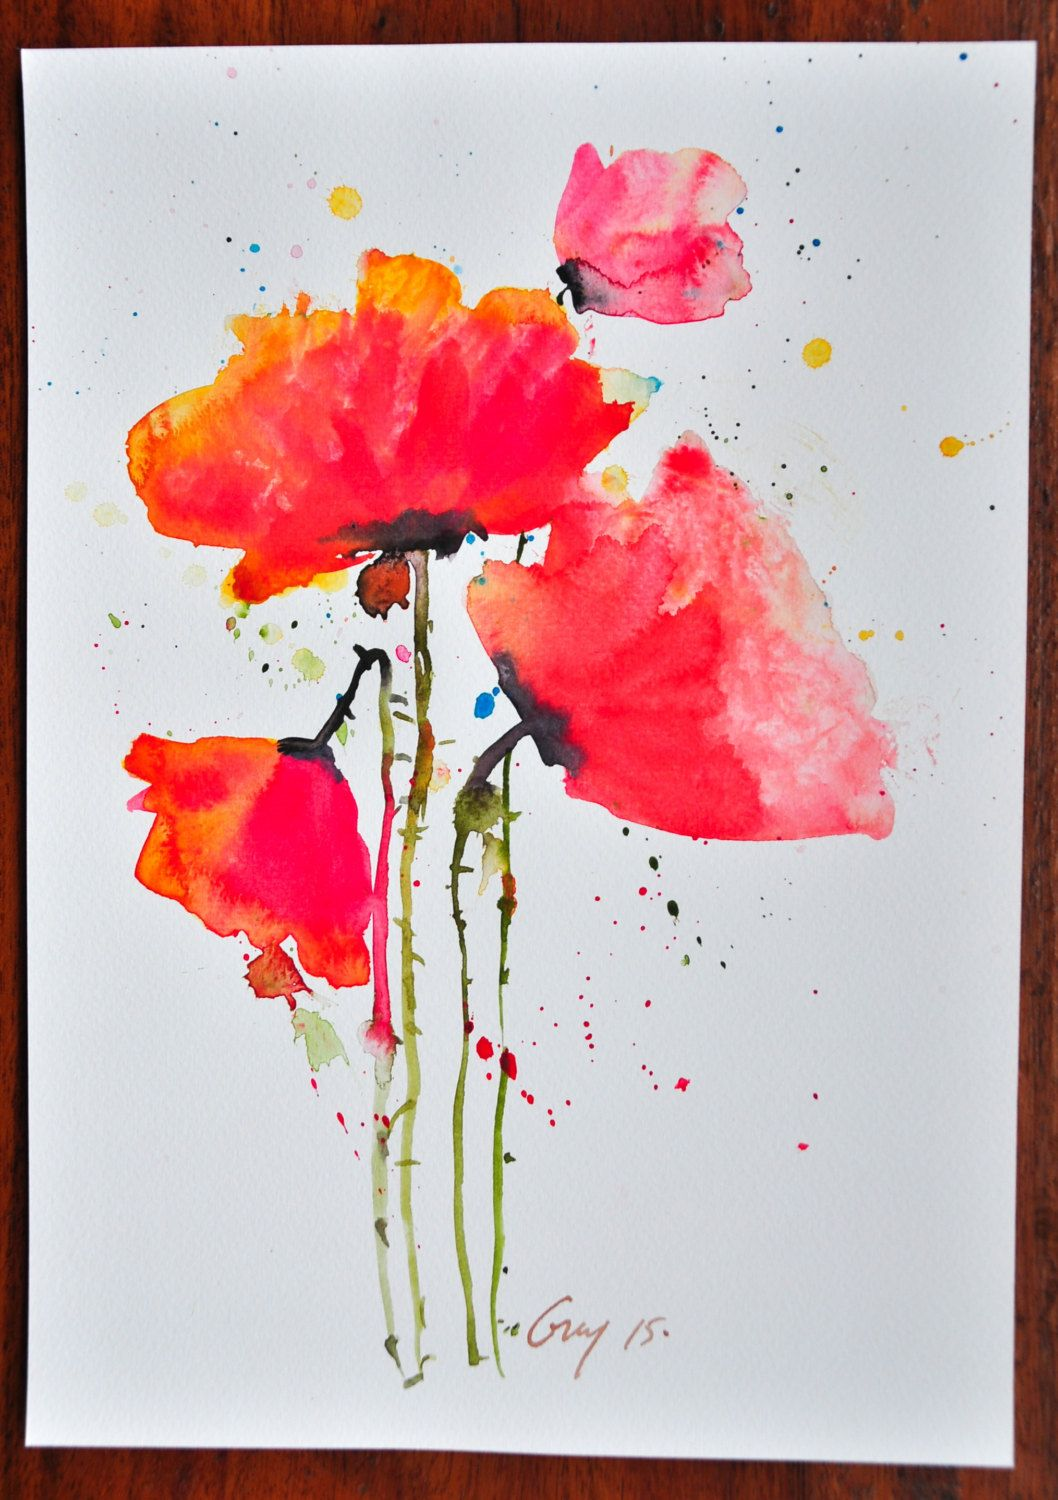 Red poppy flowers painting original watercolor painting on white red poppy flowers painting original watercolor painting on white paper with signed small painting size 21 x 297 cm for decorate by guykantawan on etsy mightylinksfo